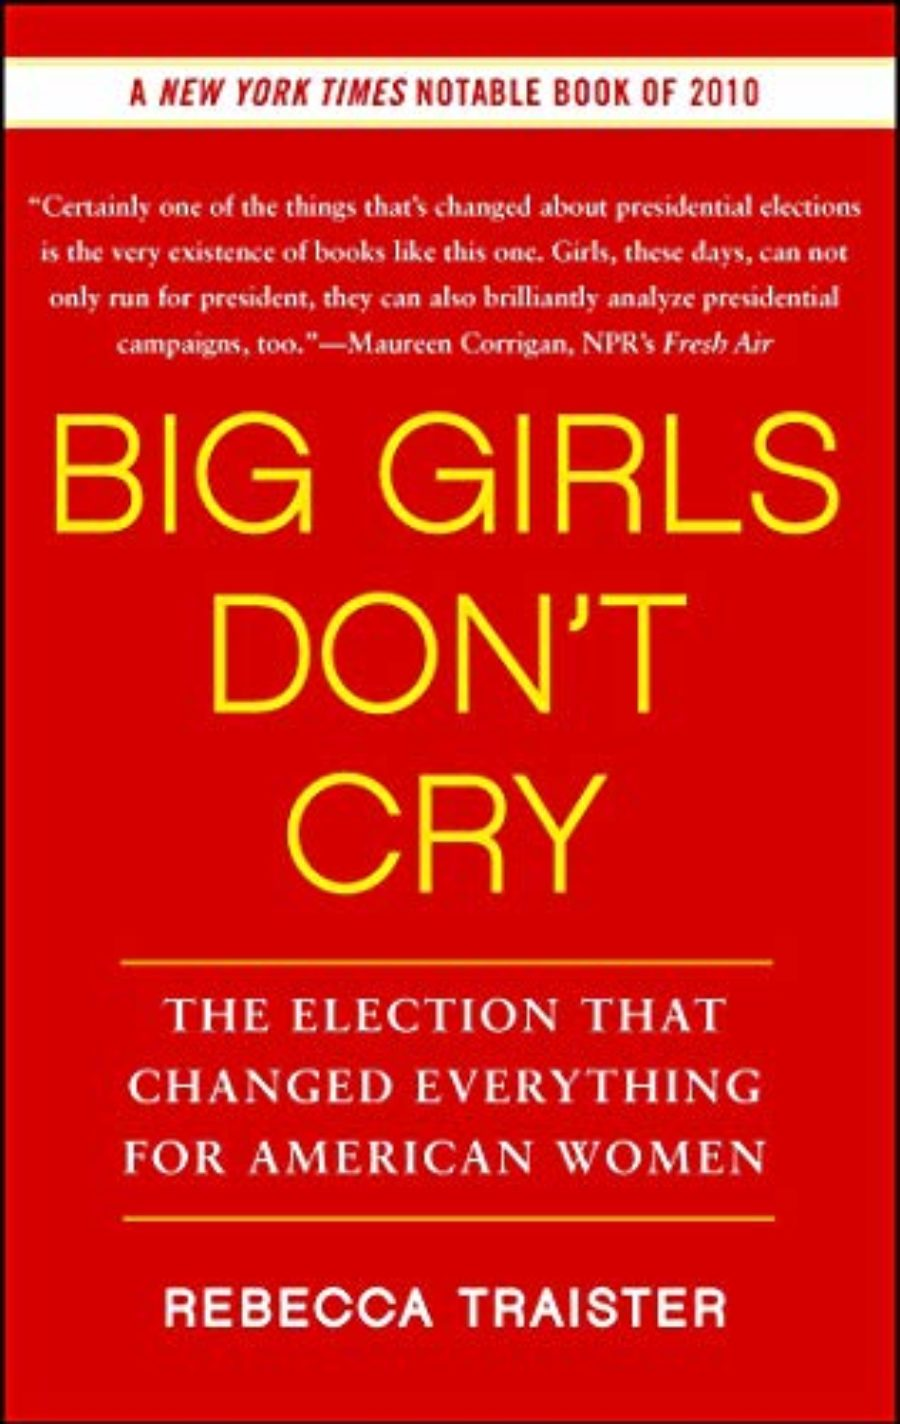 Cover of Big Girls Don't Cry: The Election that Changed Everything for American Women